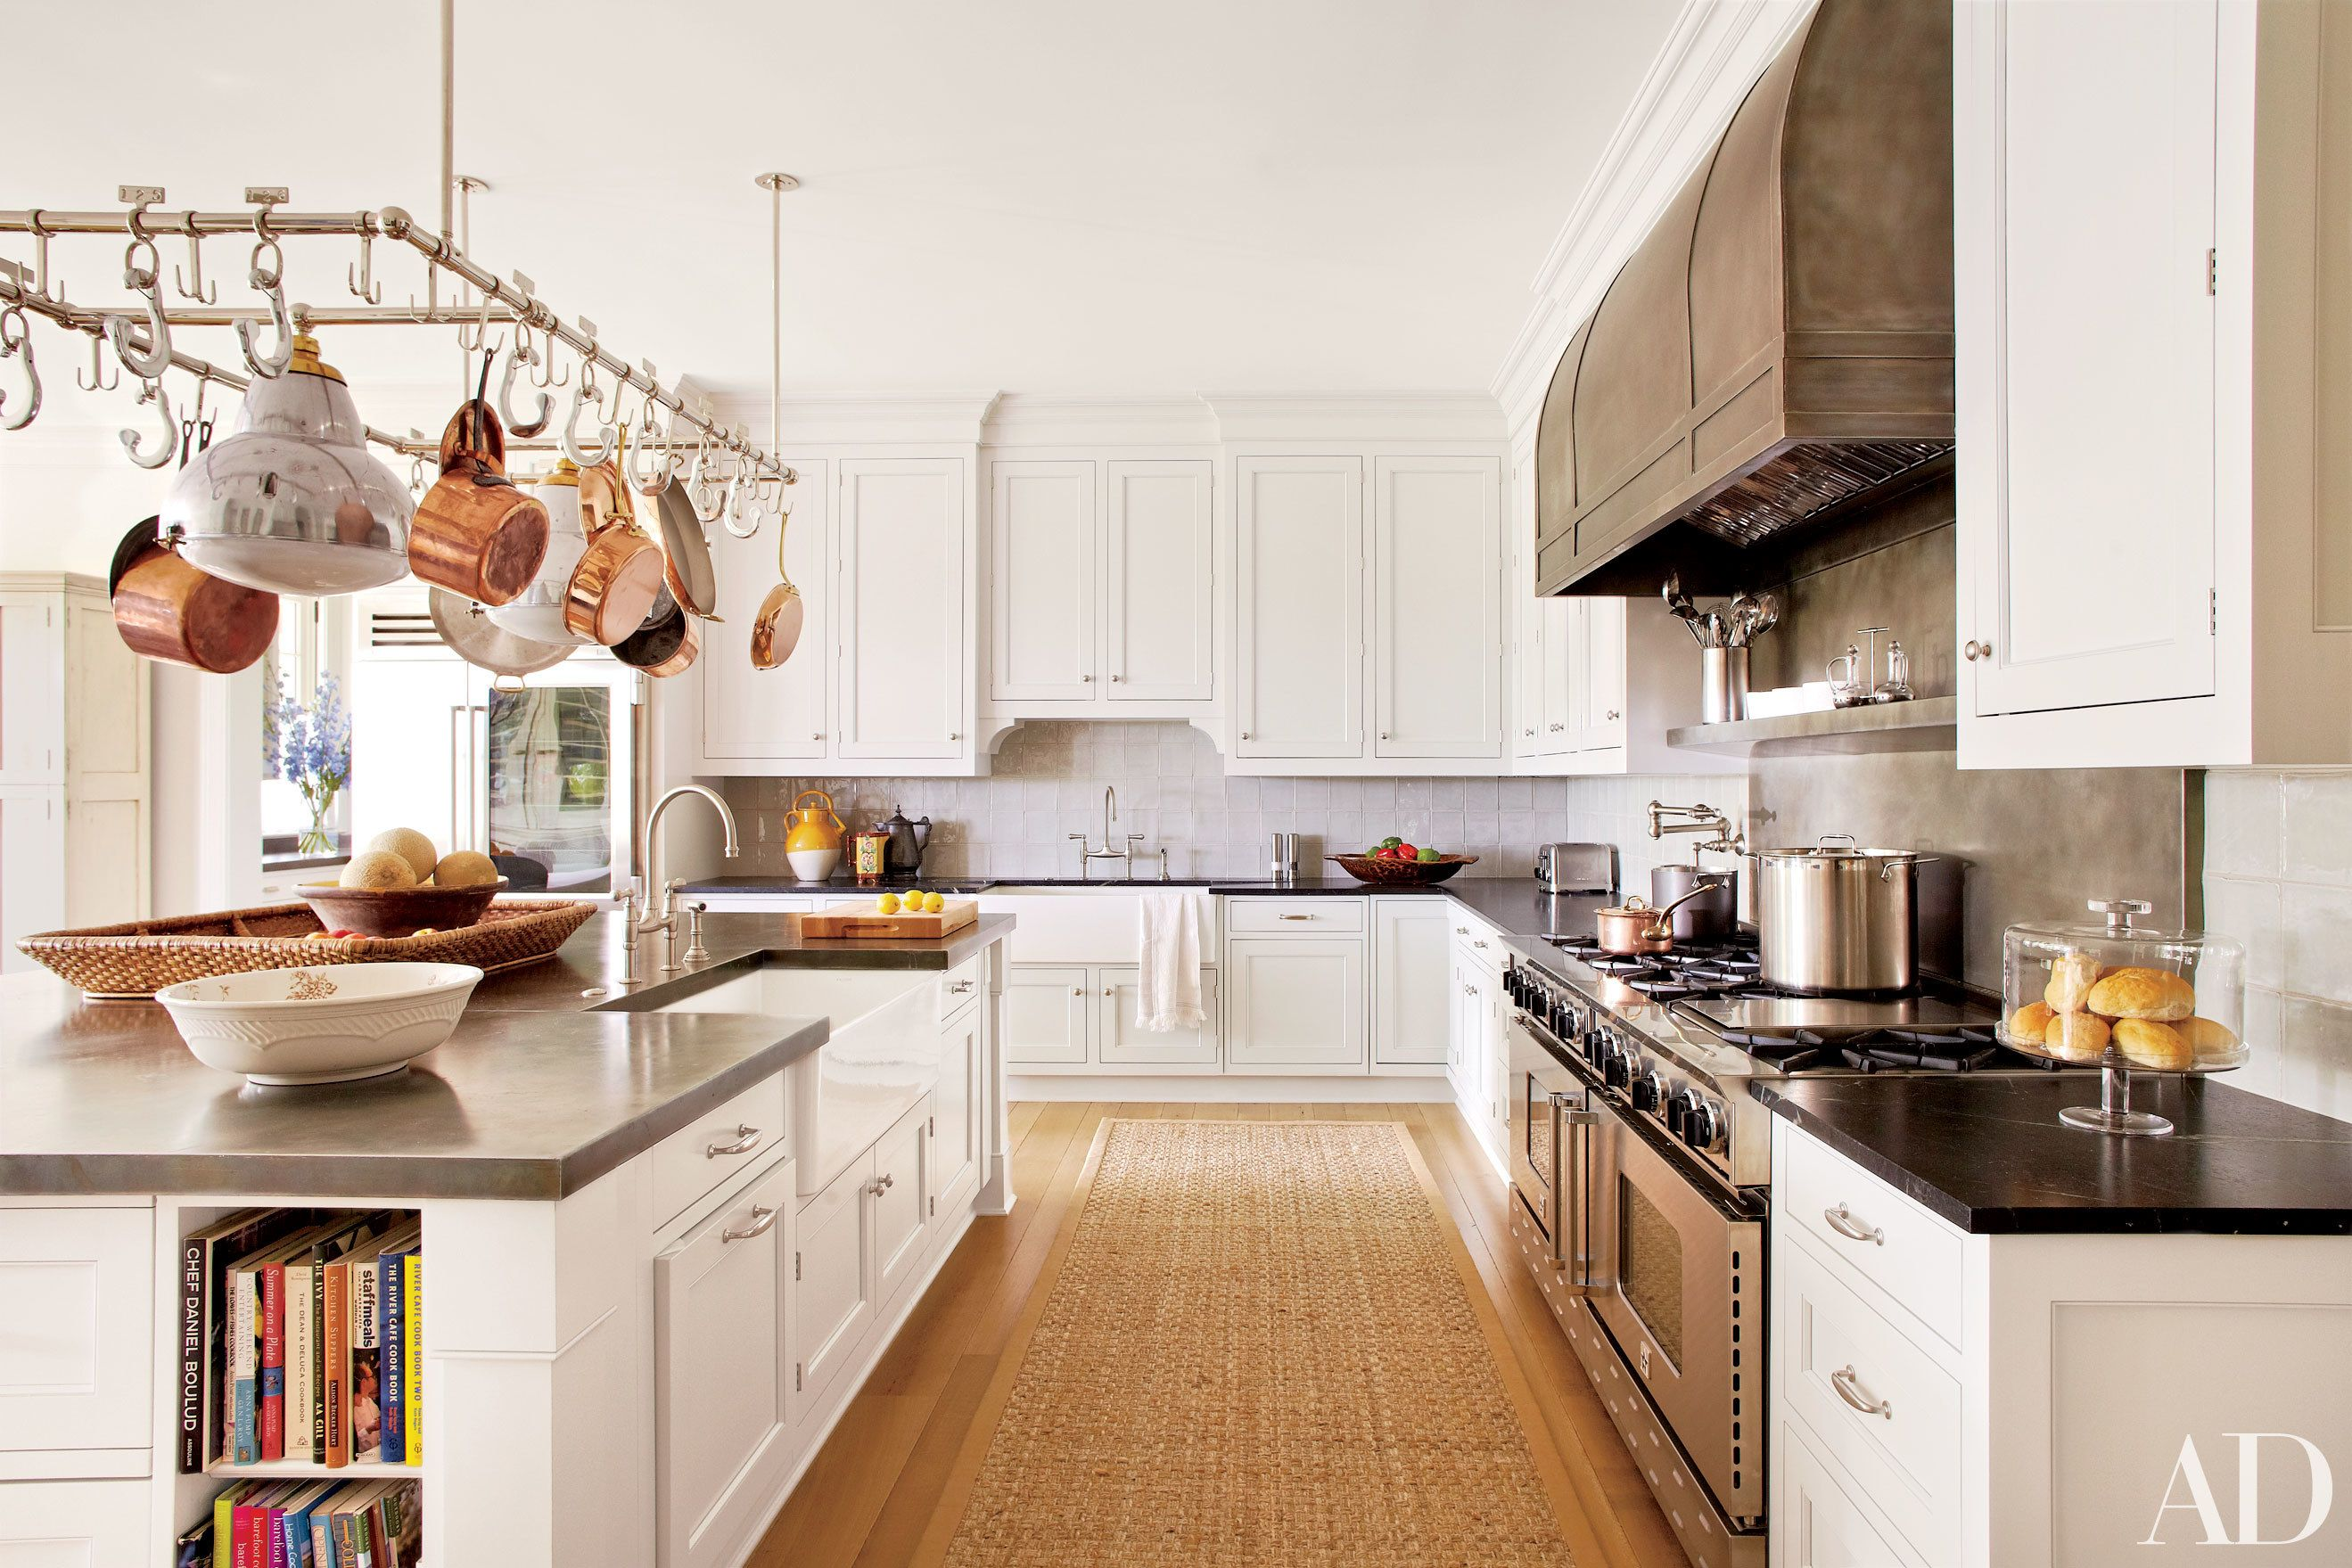 Kitchen Design Company Stunning White Kitchens Design Ideas  Architectural Digest Kitchen Design Decorating Design